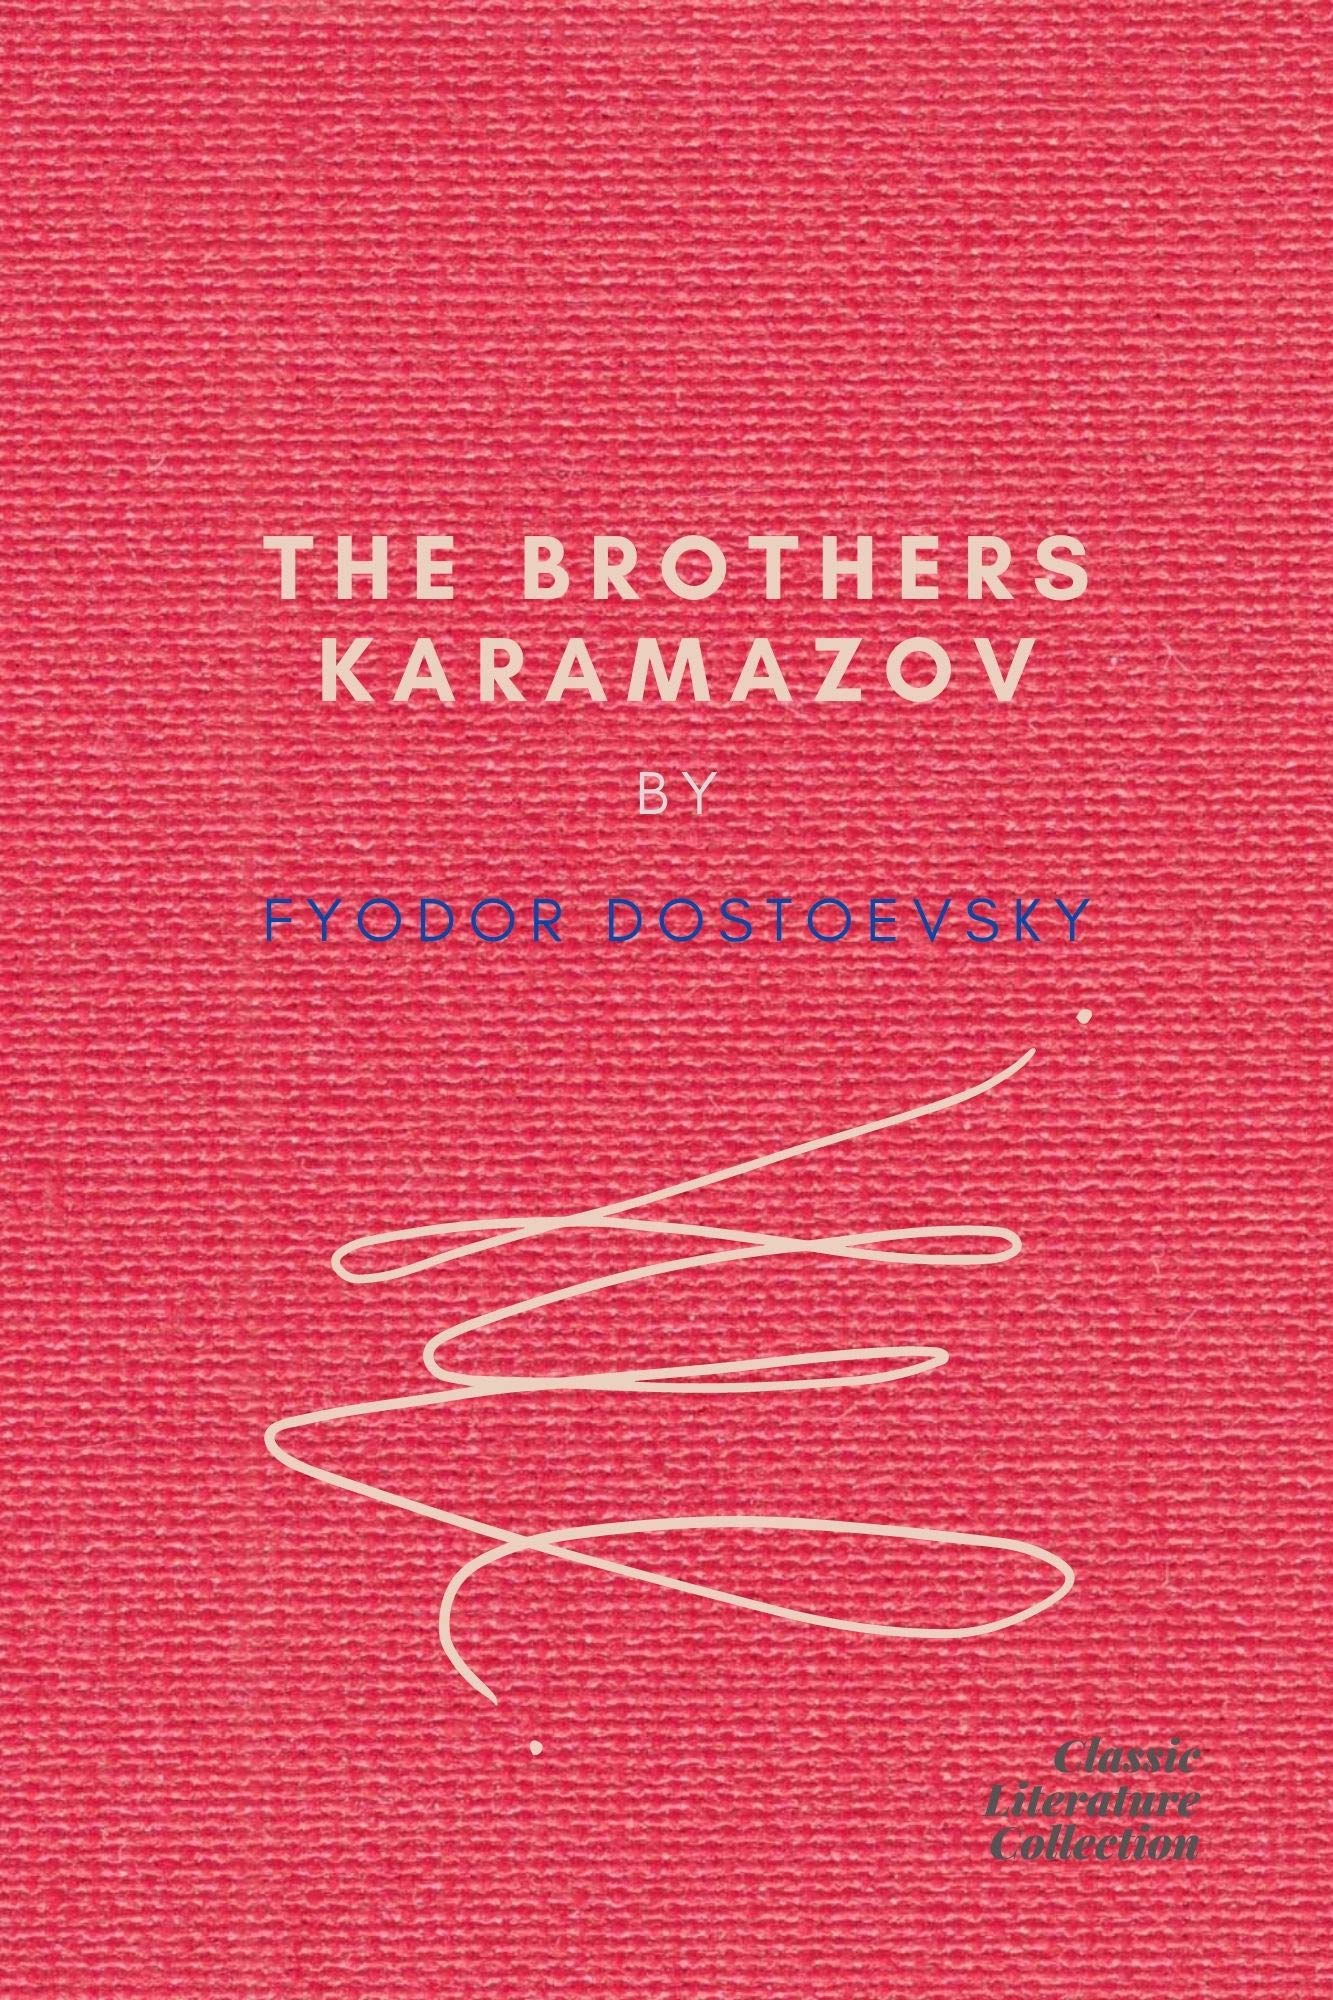 The Brothers Karamazov by Fyodor Dostoevsky (Classic Literature Collection Book 14)